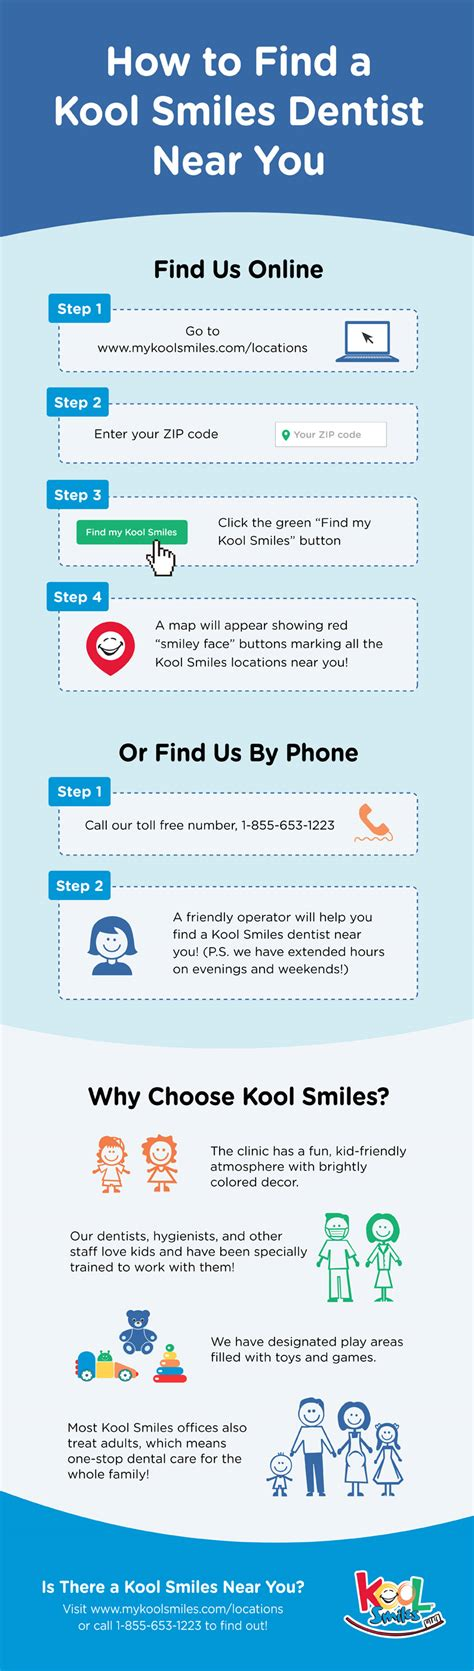 How To Find Near You On How To Find A Kool Smiles Dentist Near You Infographic Kool Smiles Kool